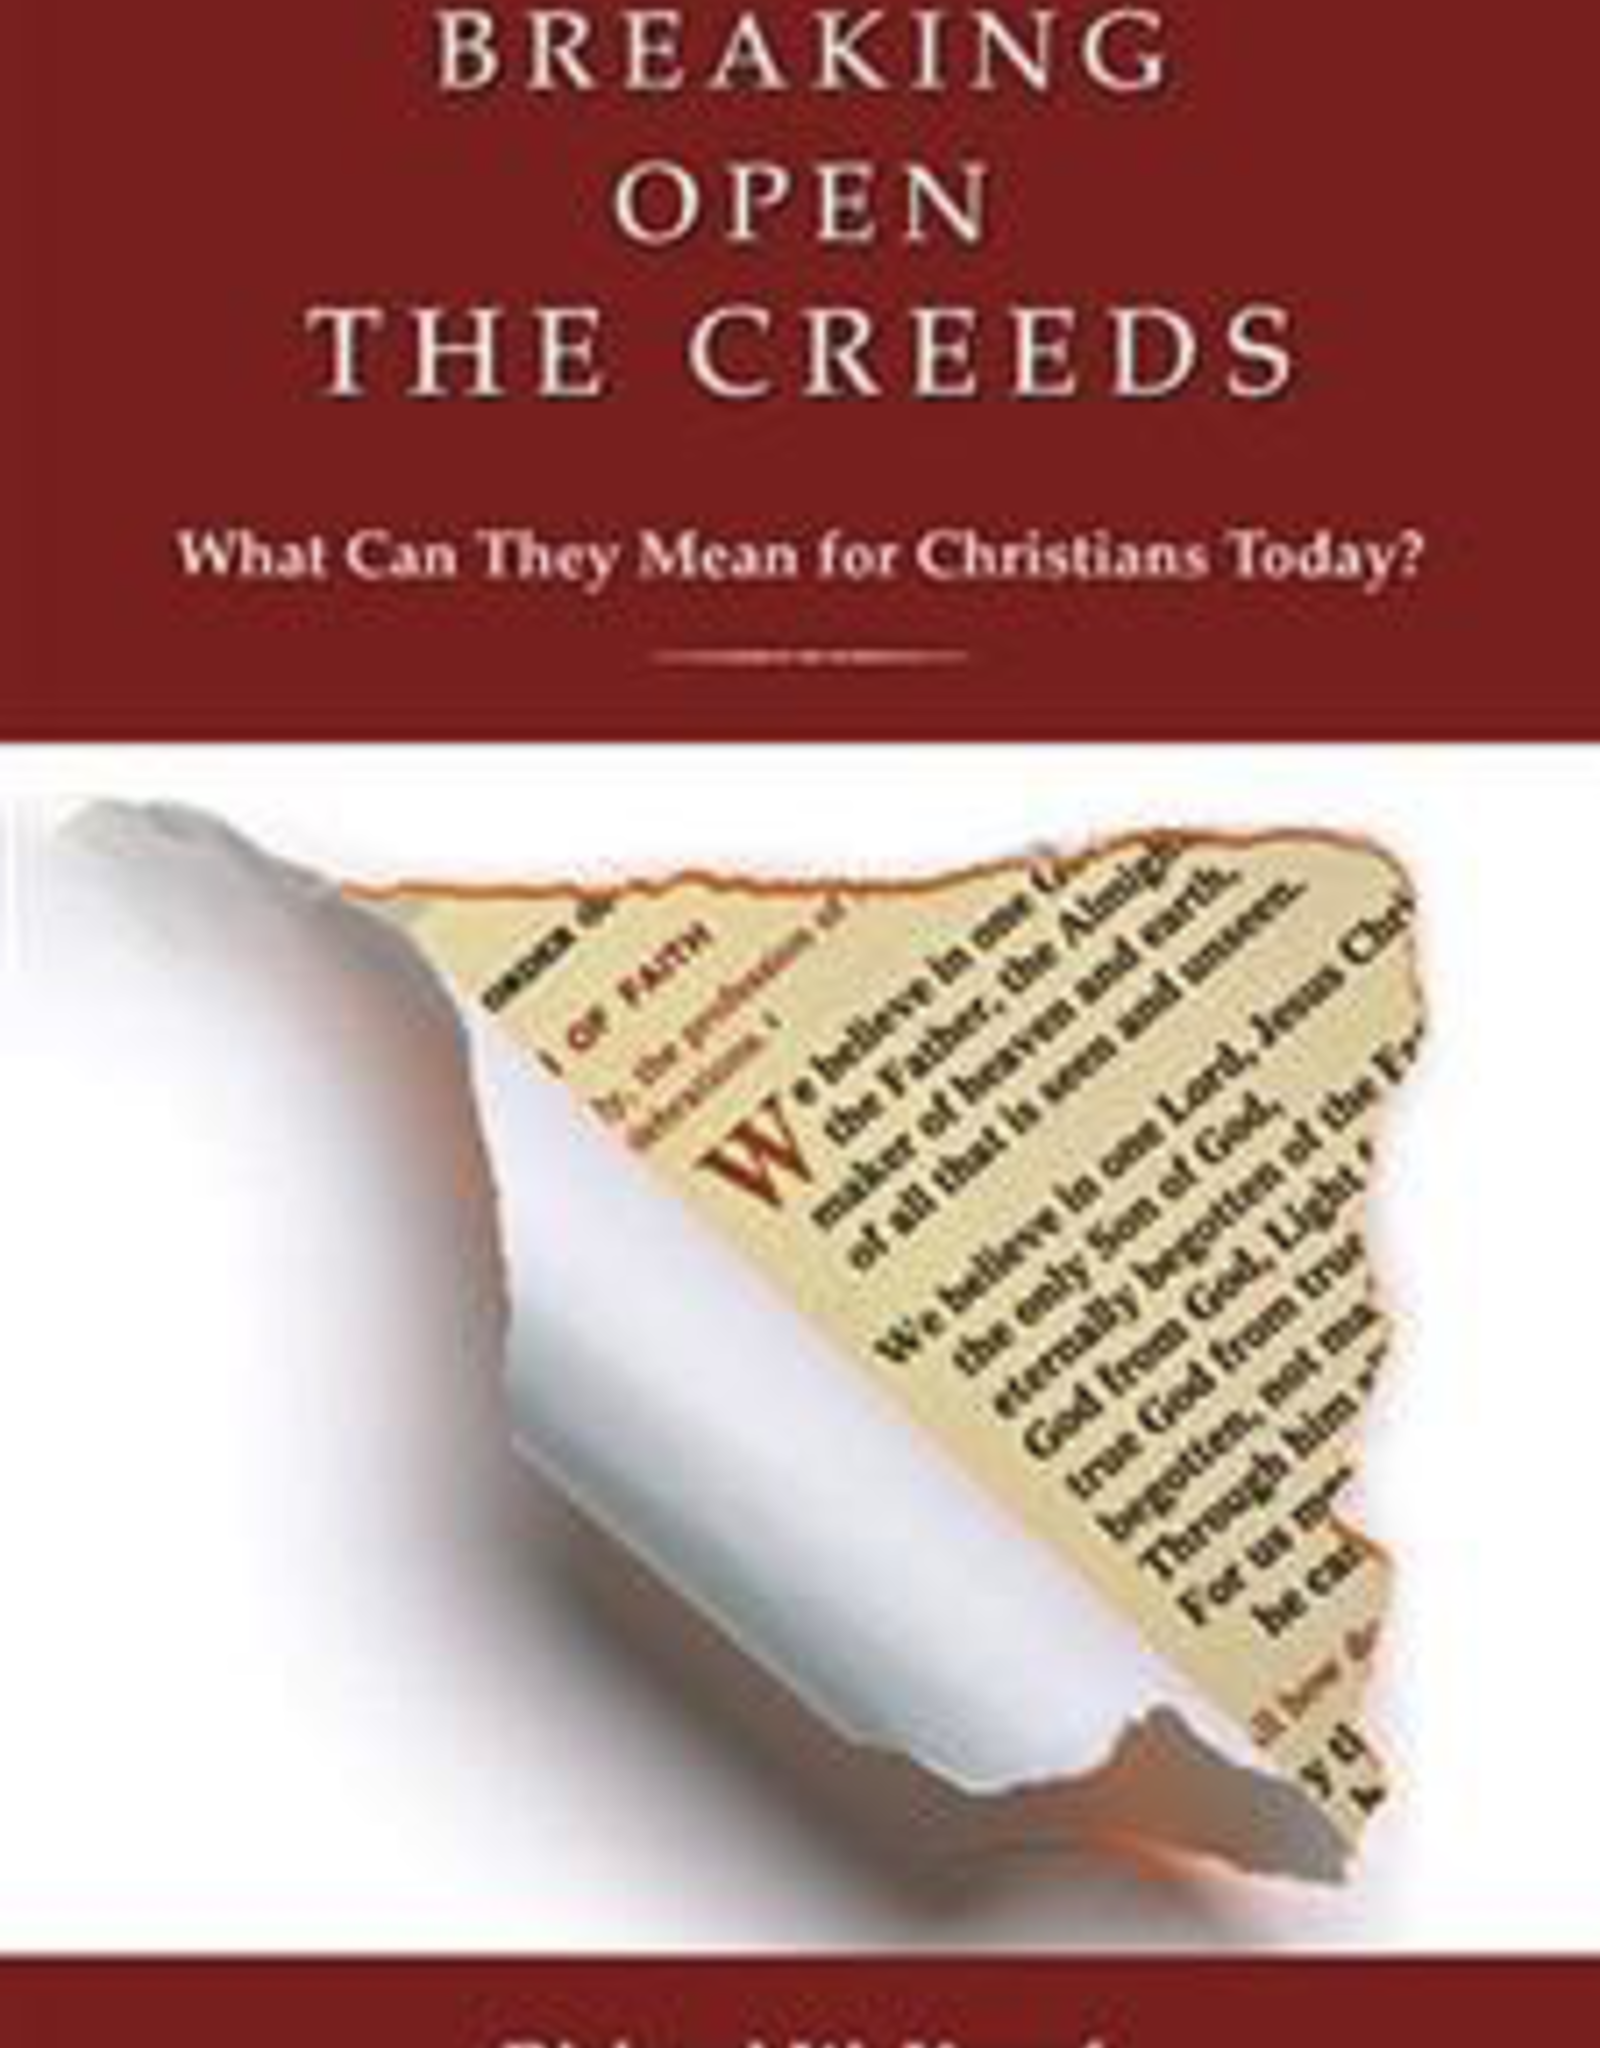 Paulist Press Breaking Open the Creeds:  What Can They Mean for Christians Today?, by Richard W. Kropf (paperback)